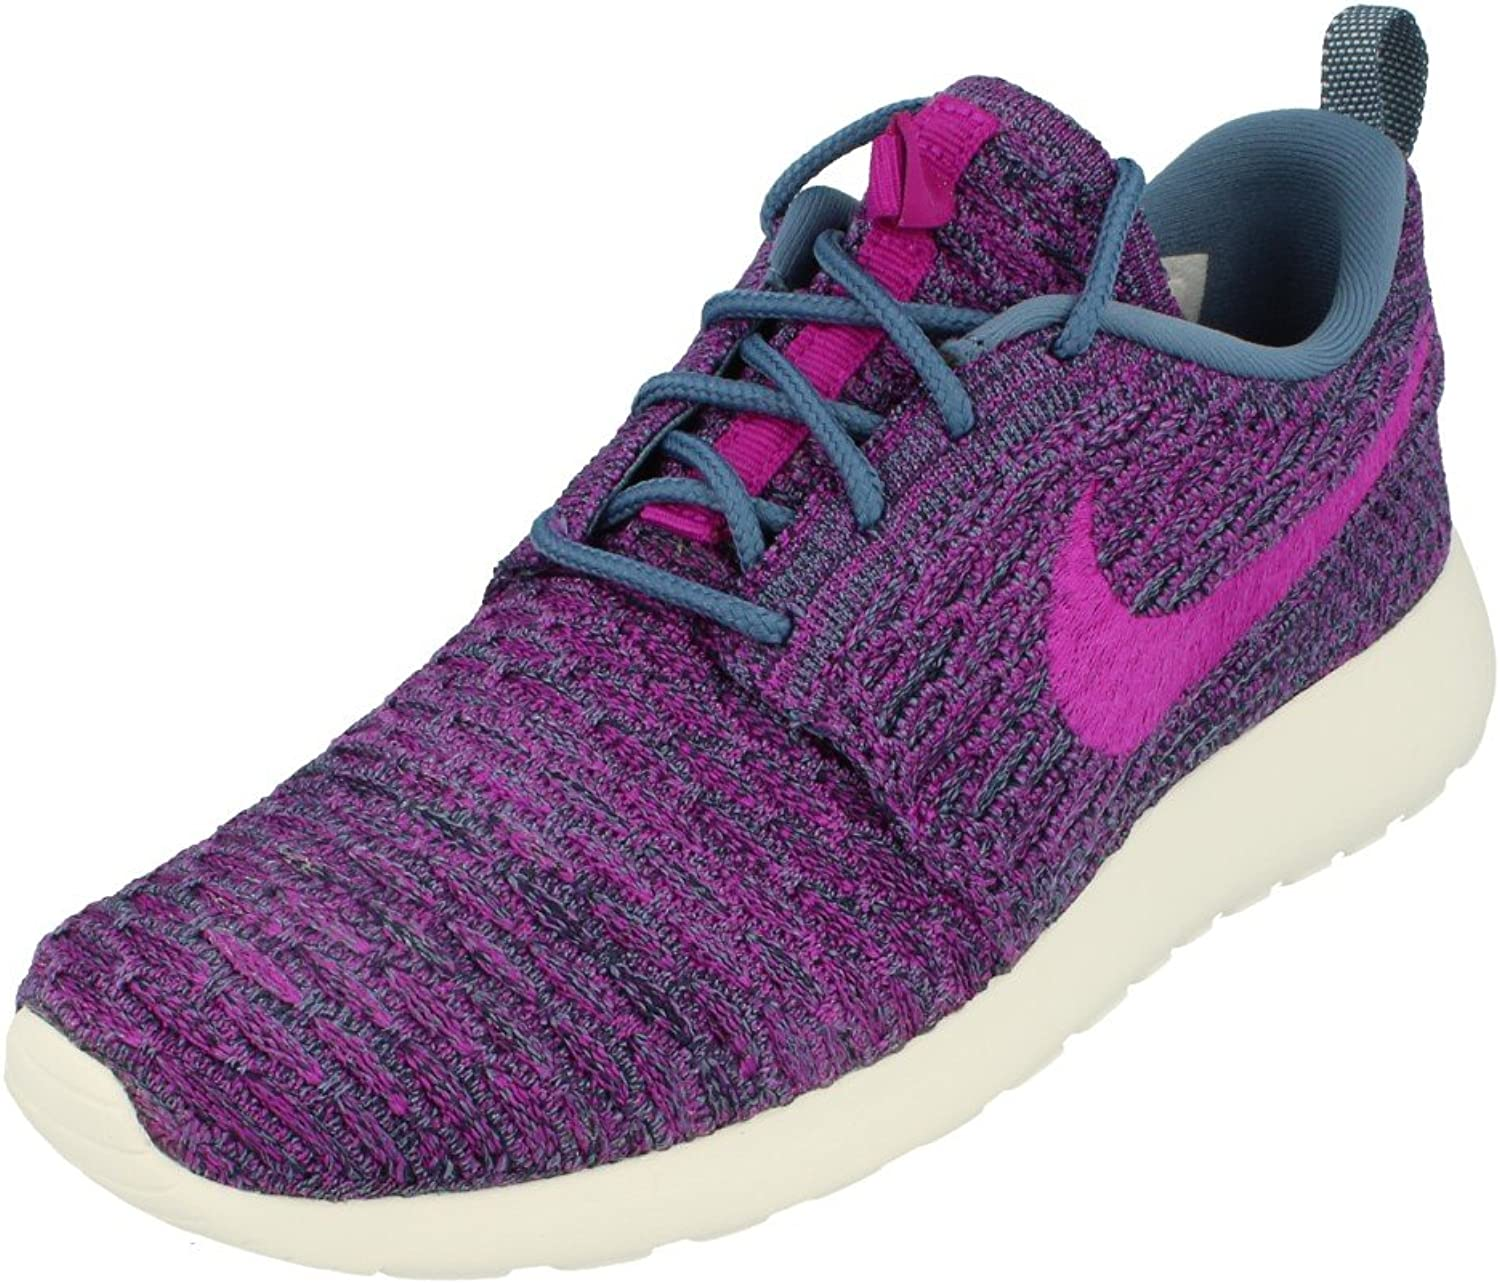 Nike Women's Roshe One Flyknit Running shoes bluee